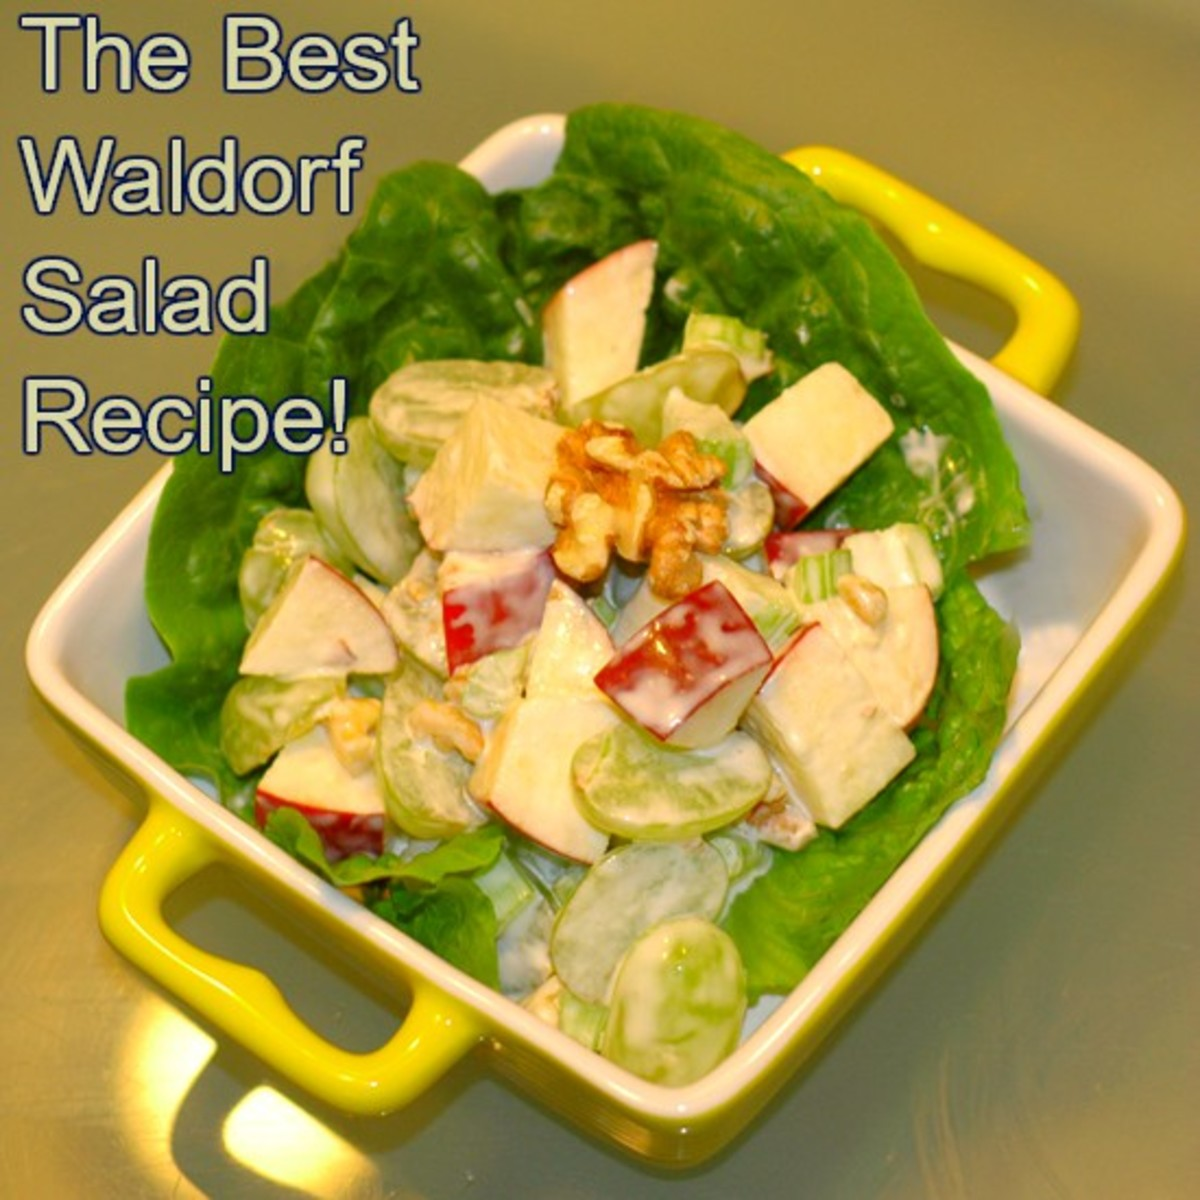 The Waldorf salad will add elegance to any occasion.